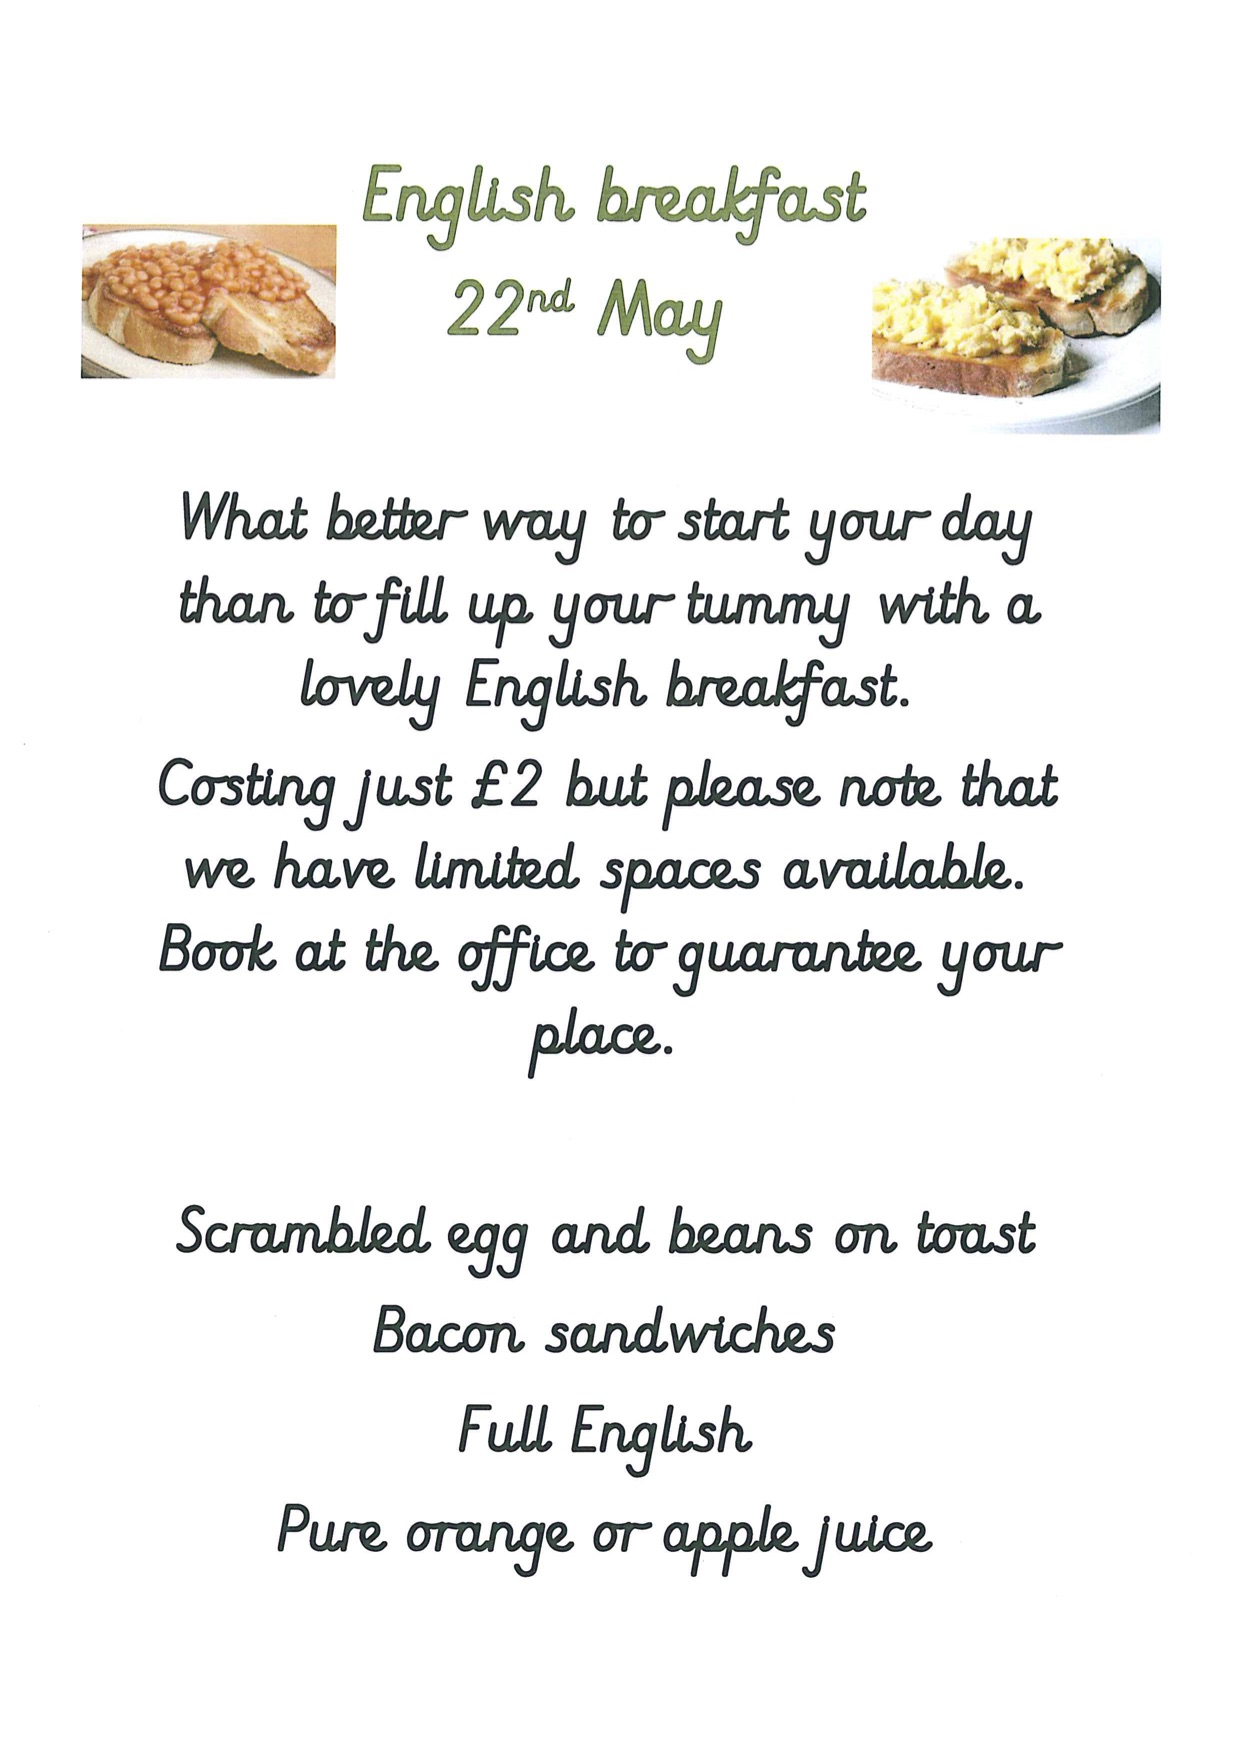 Poster for the Breakfast menu 22nd May 2019